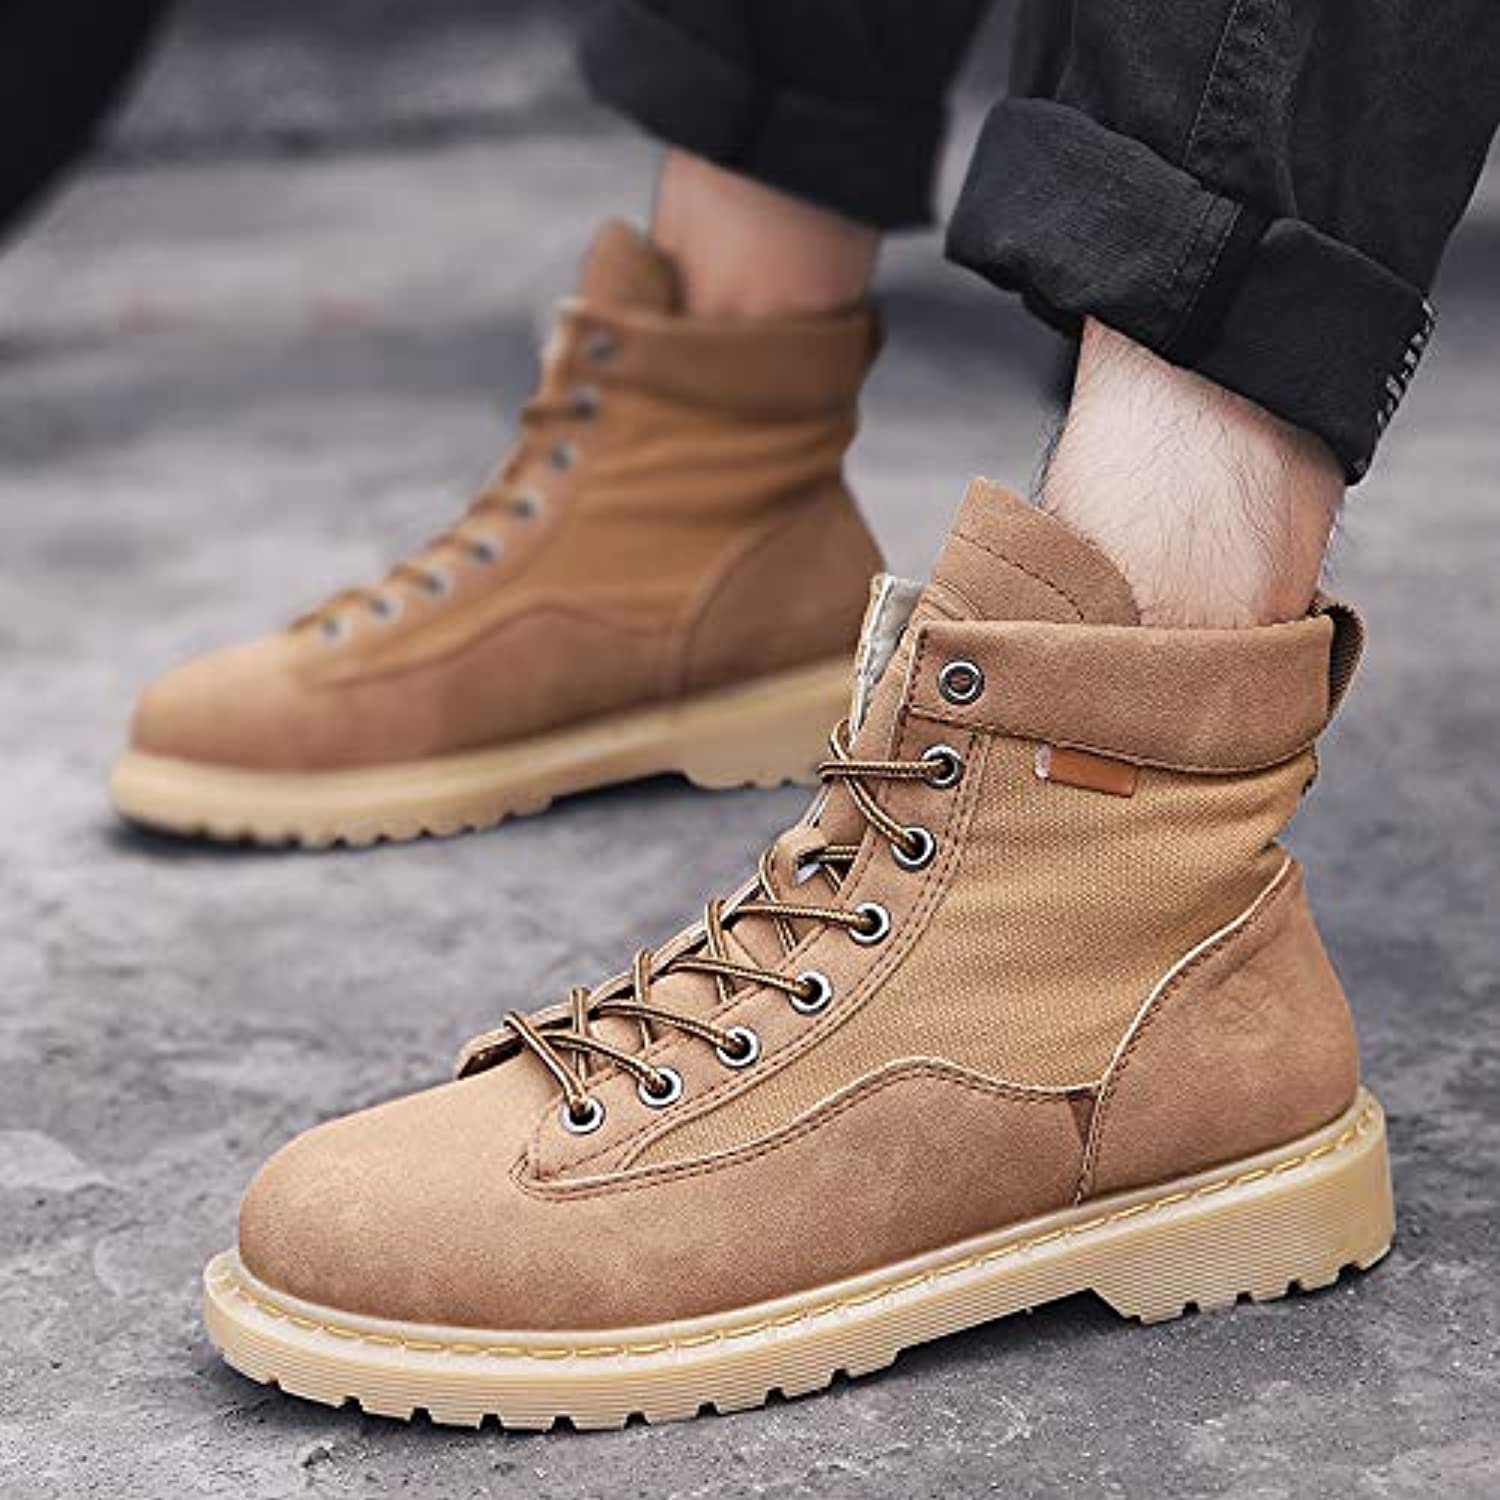 ZyuQ Ankle boots Men'S shoes Martin Boots Men'S Boots High shoes Men'S Retro In The Desert Boots Tooling Boots